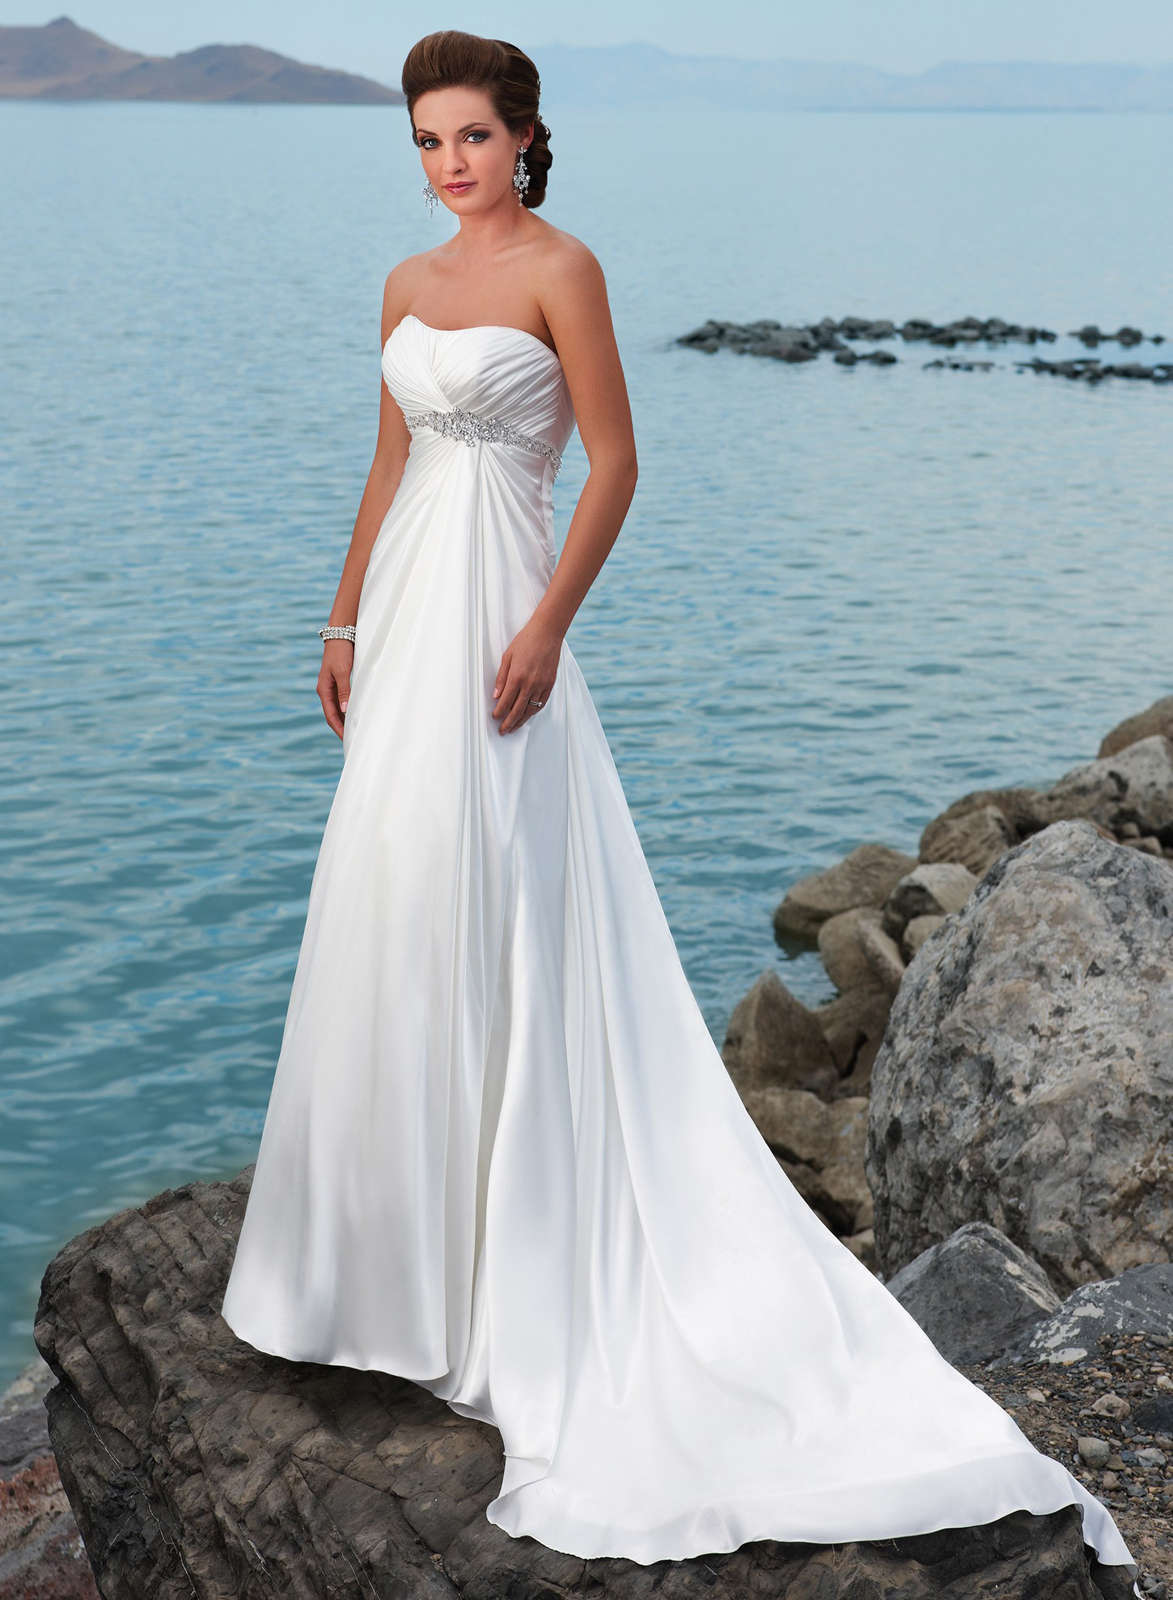 wedding dresses cold climates: Beach Wedding Dresses 2015